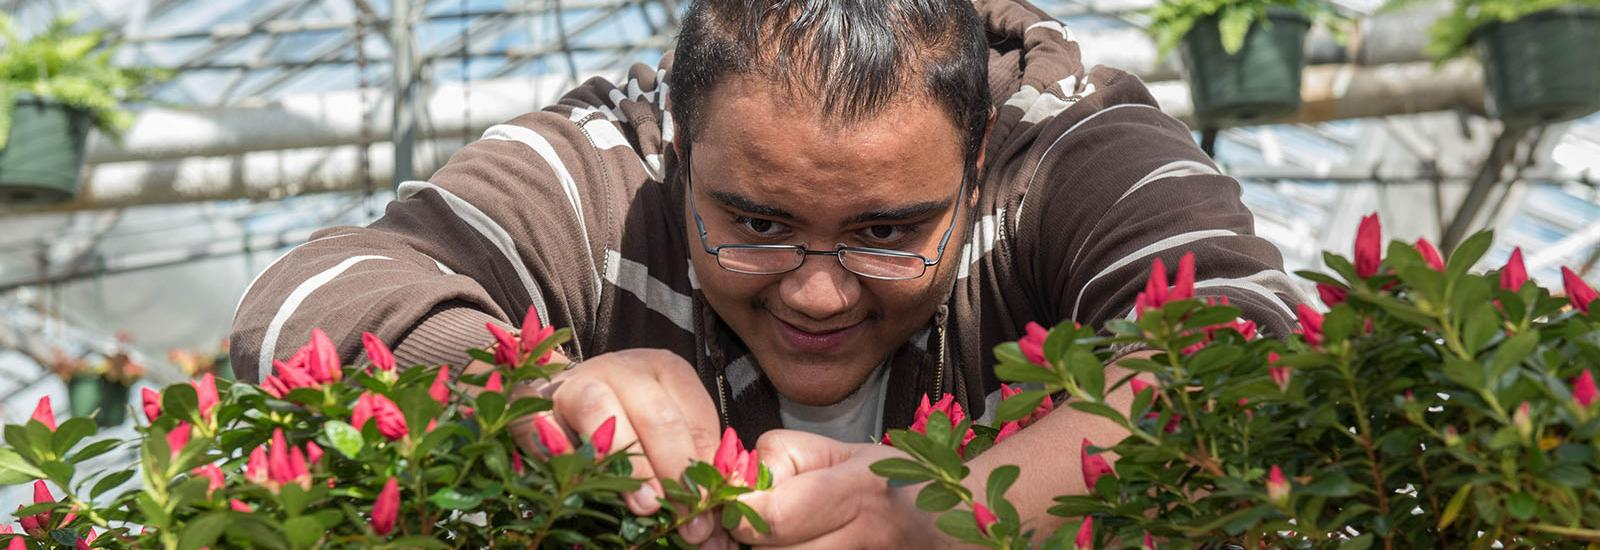 Person working with plants